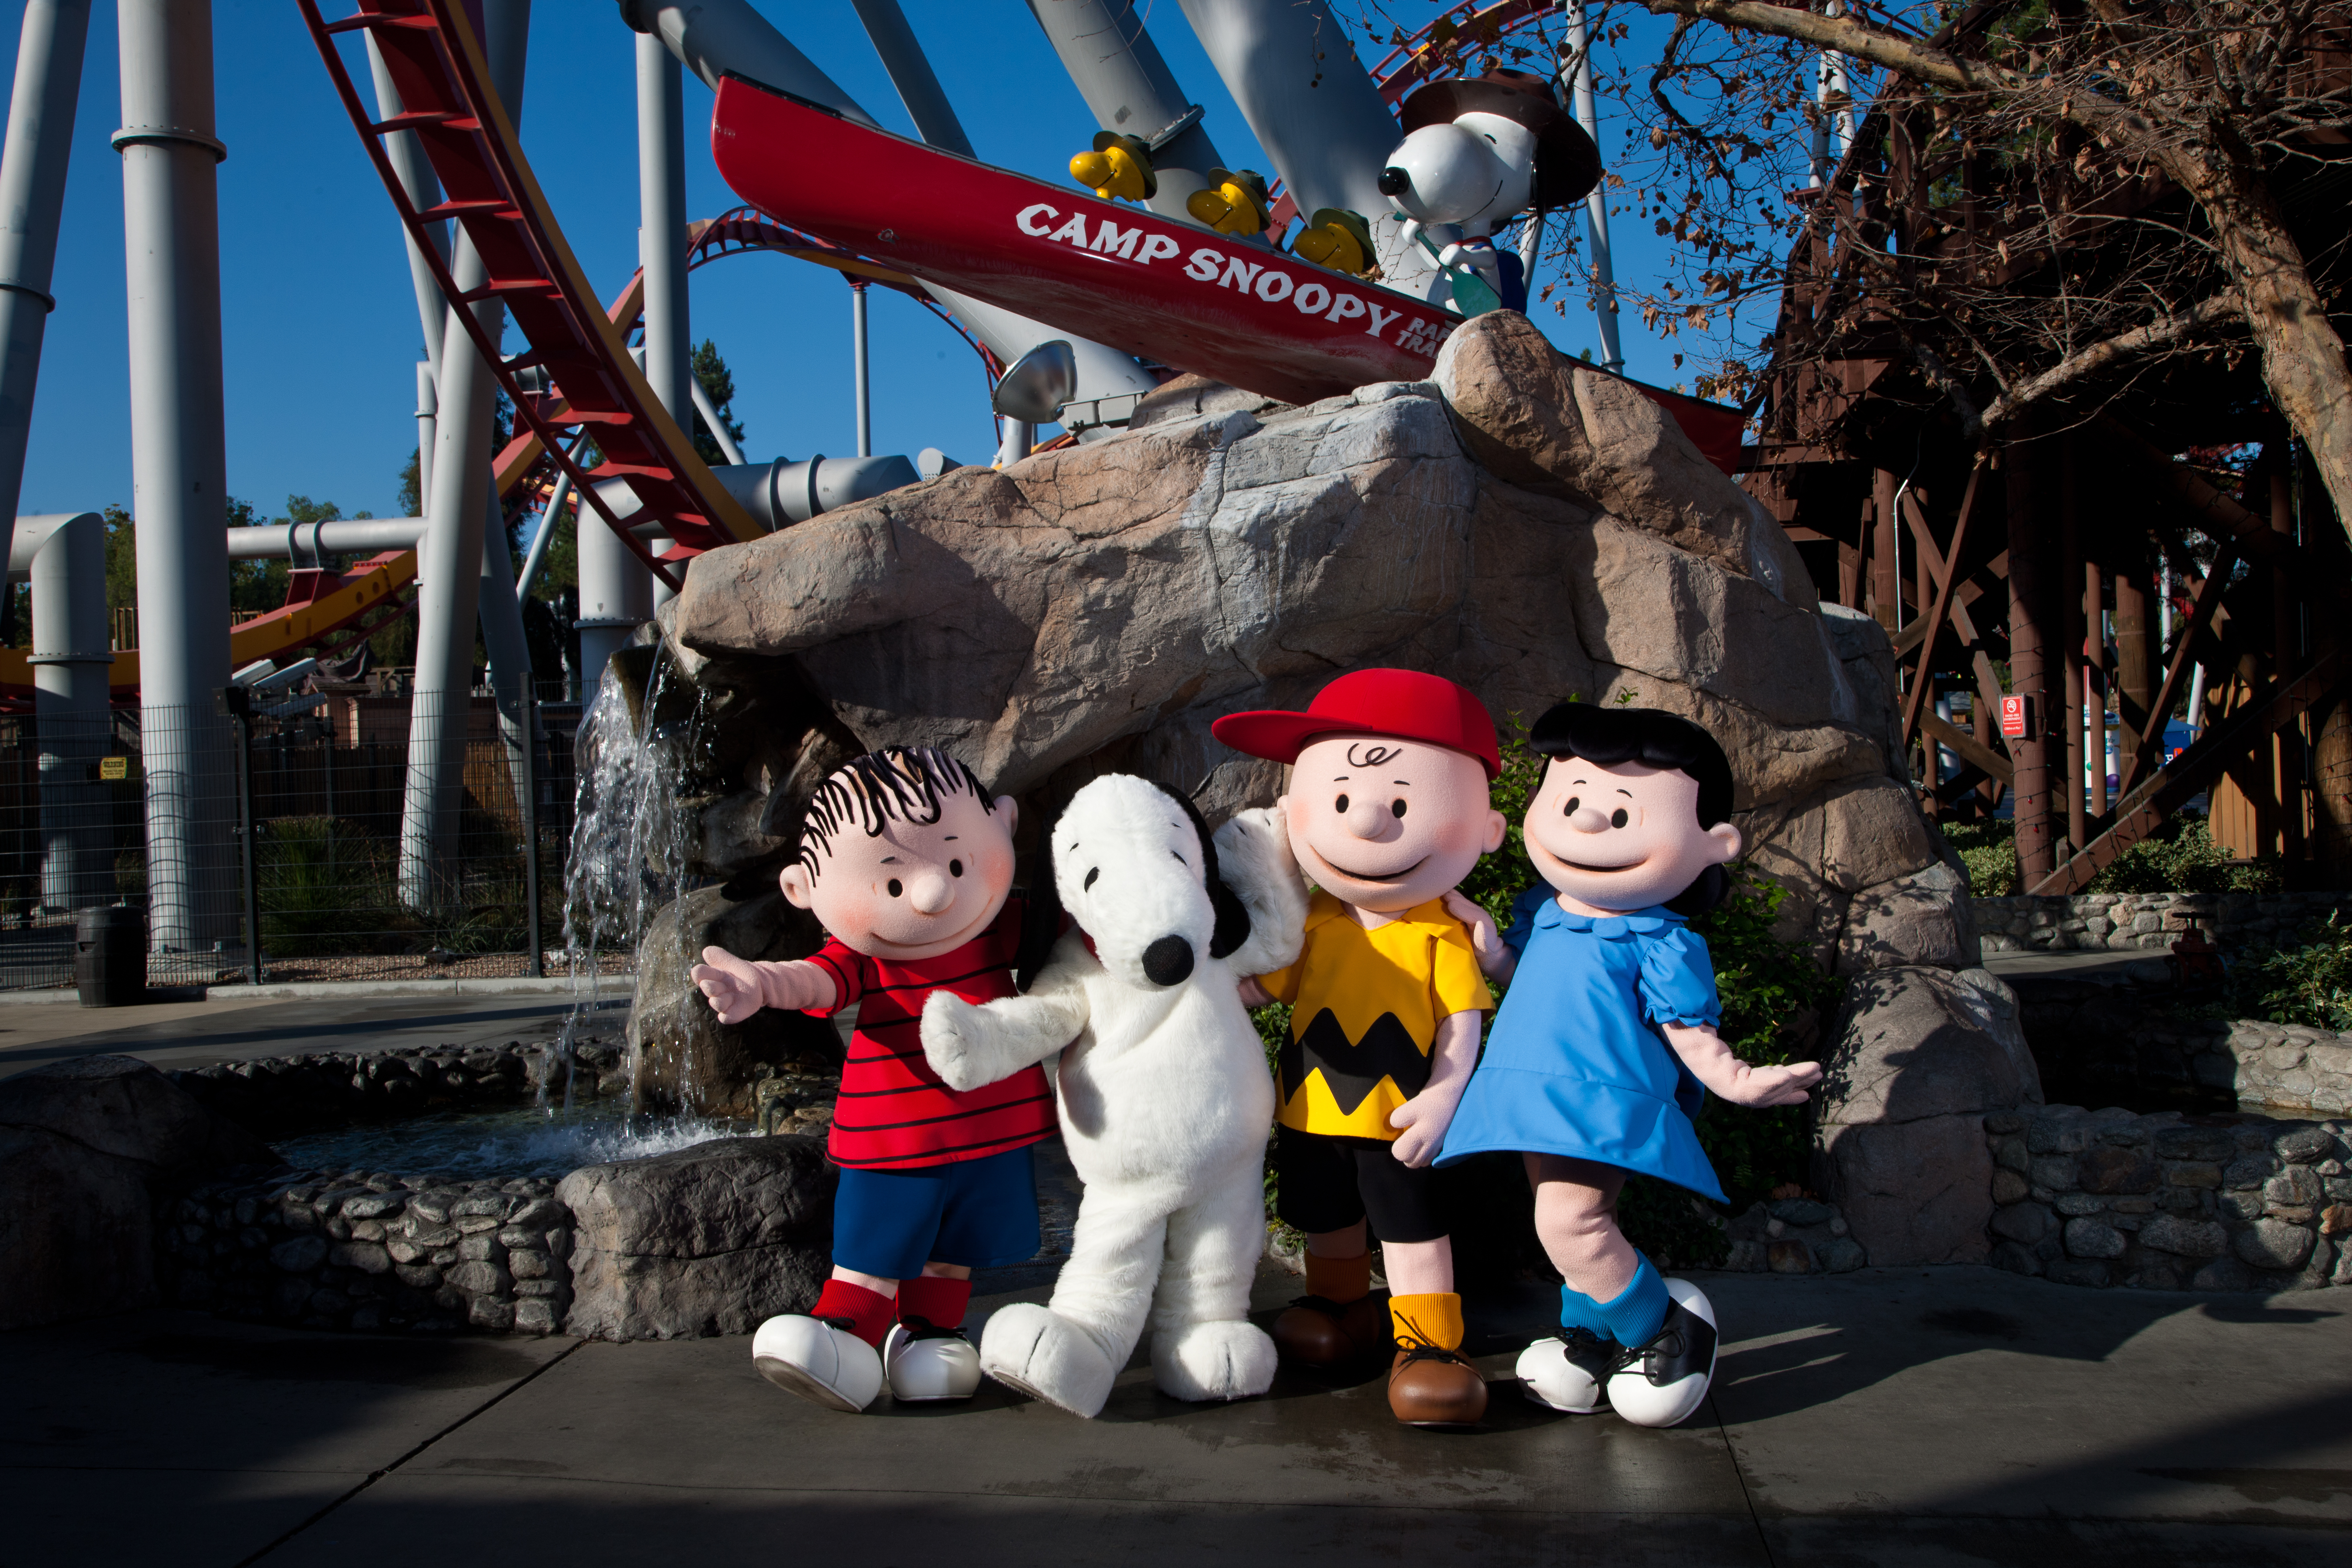 If you're looking for active vacation ideas in Southern California, don't miss Knott's Berry Farm!